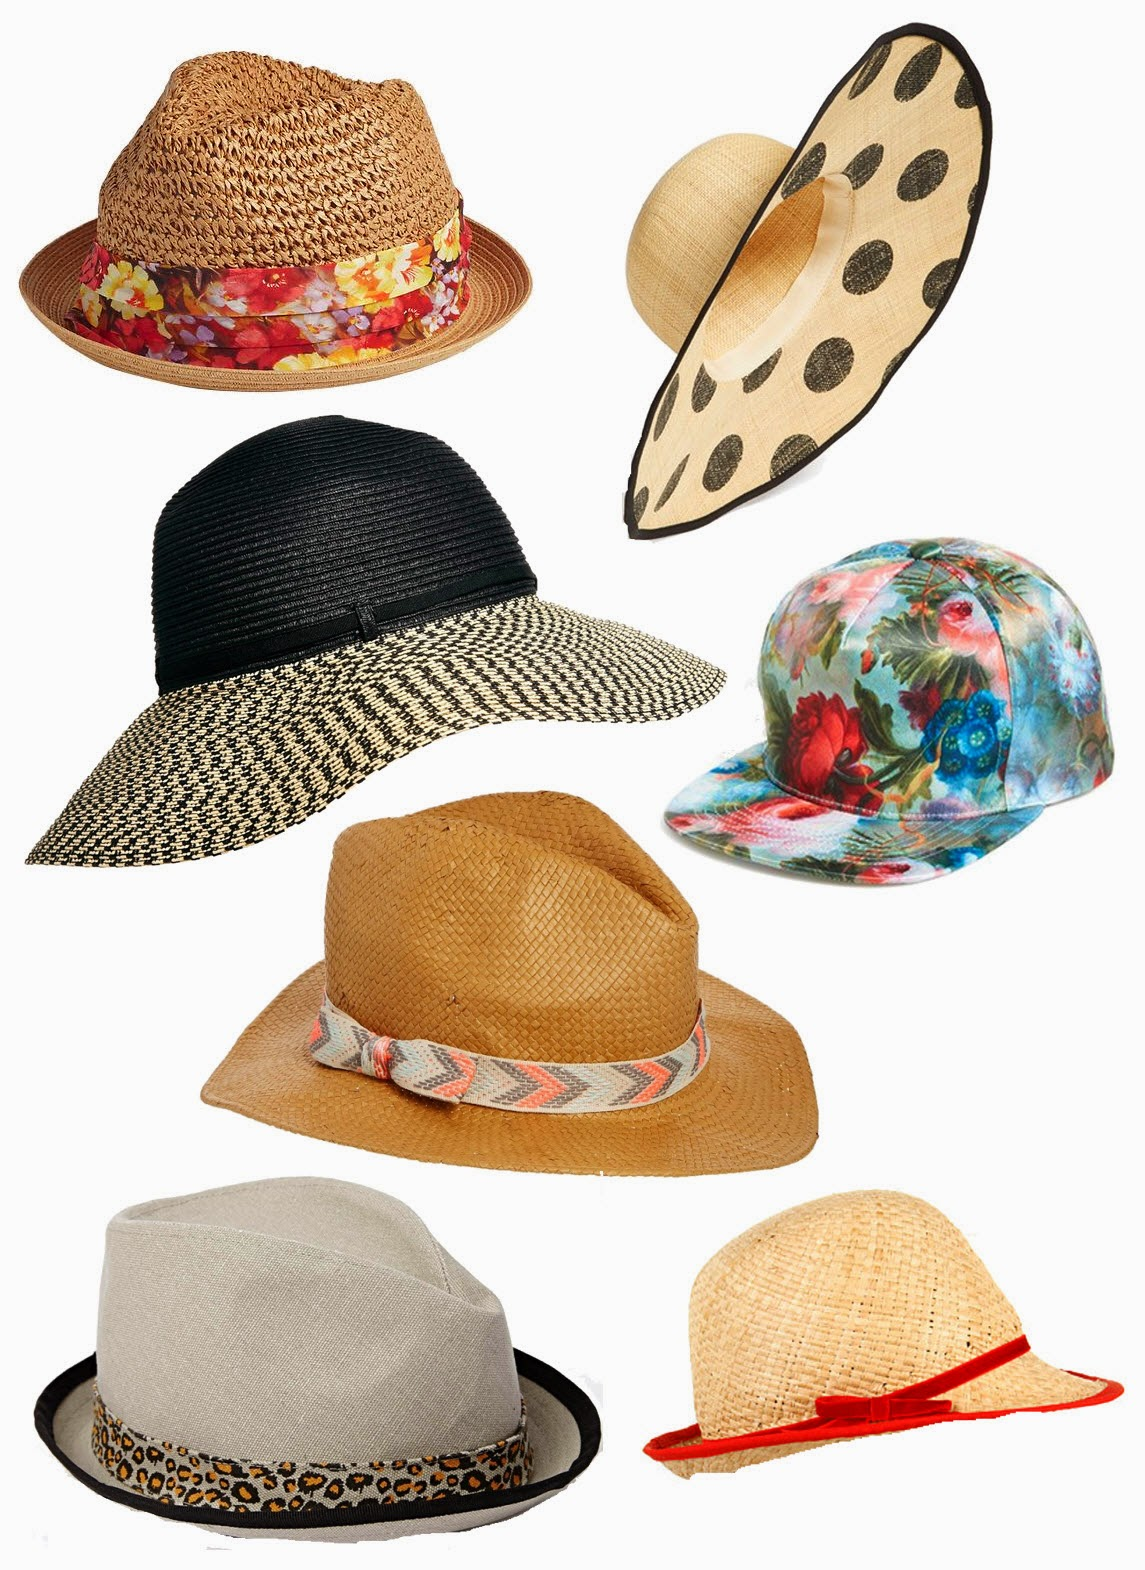 Fashion Friday: Summer Hats via @lucismorsels